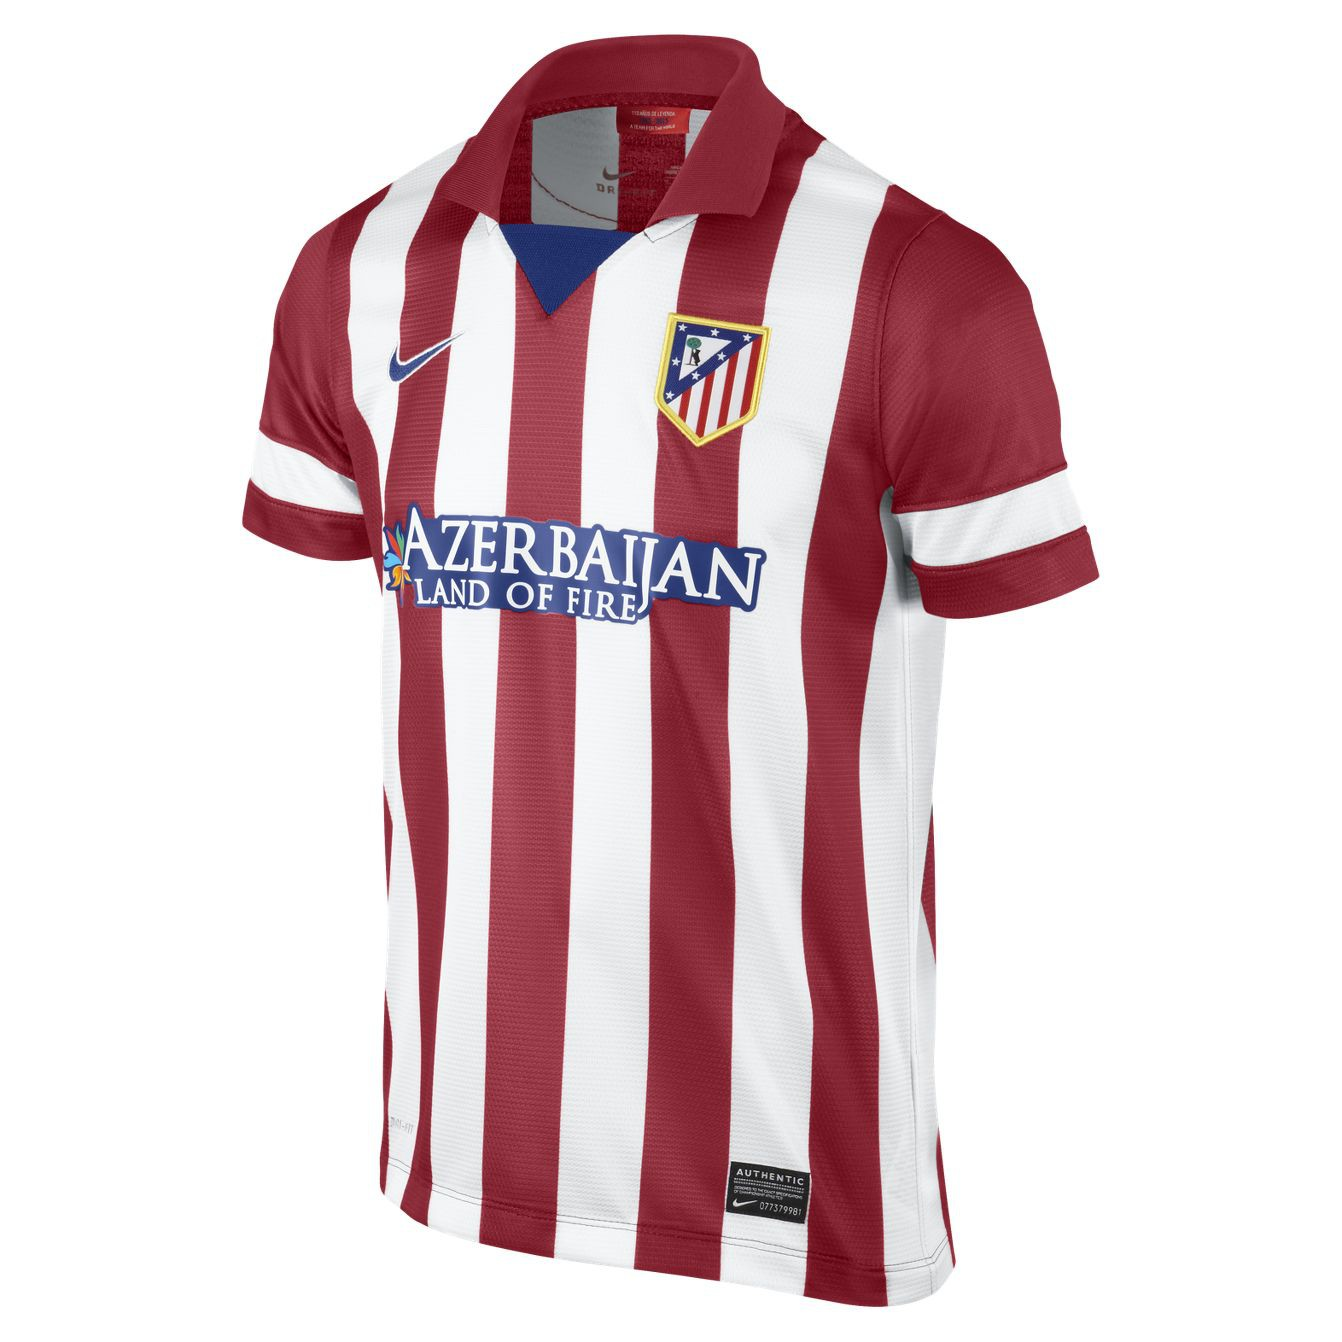 Atletico de madrid short sleeve jersey 2013/14